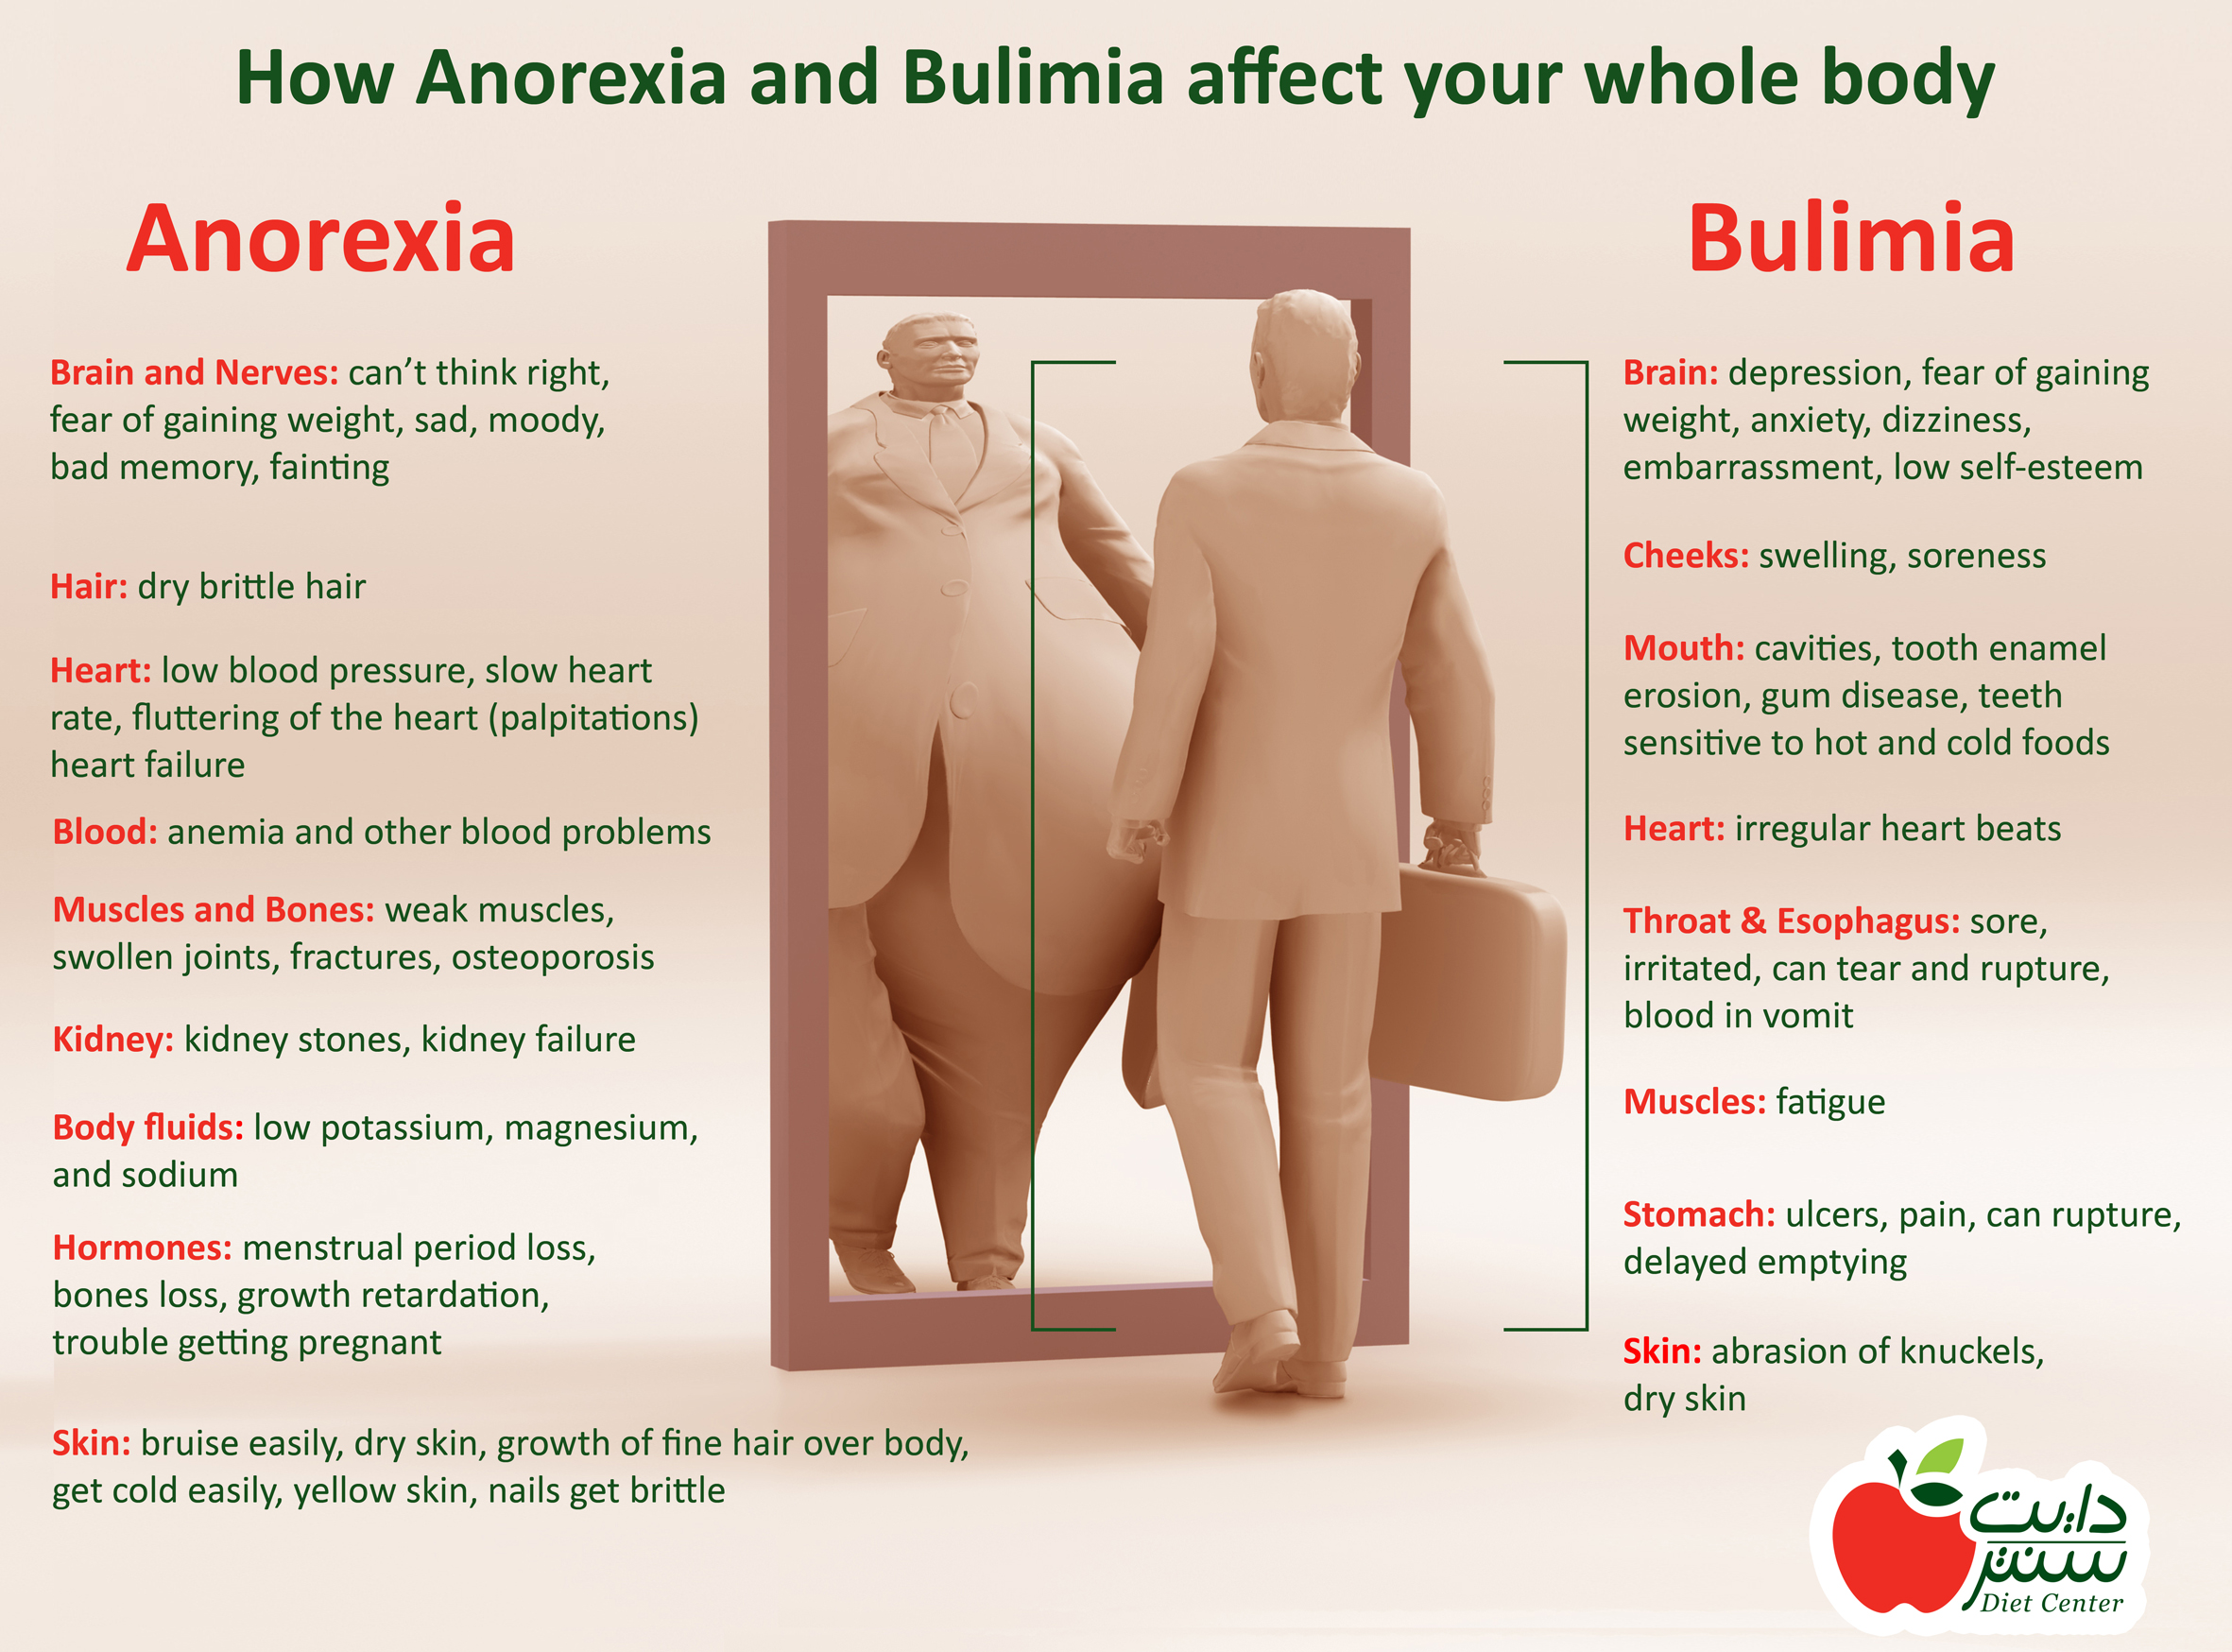 a study on eating disorders anorexia and bulimia When considering all the factors that influence the development of eating disorders, eg, anorexia and bulimia, it is apparent that the ____ is unique when compared to factors that affect the development of other psychological disorders.